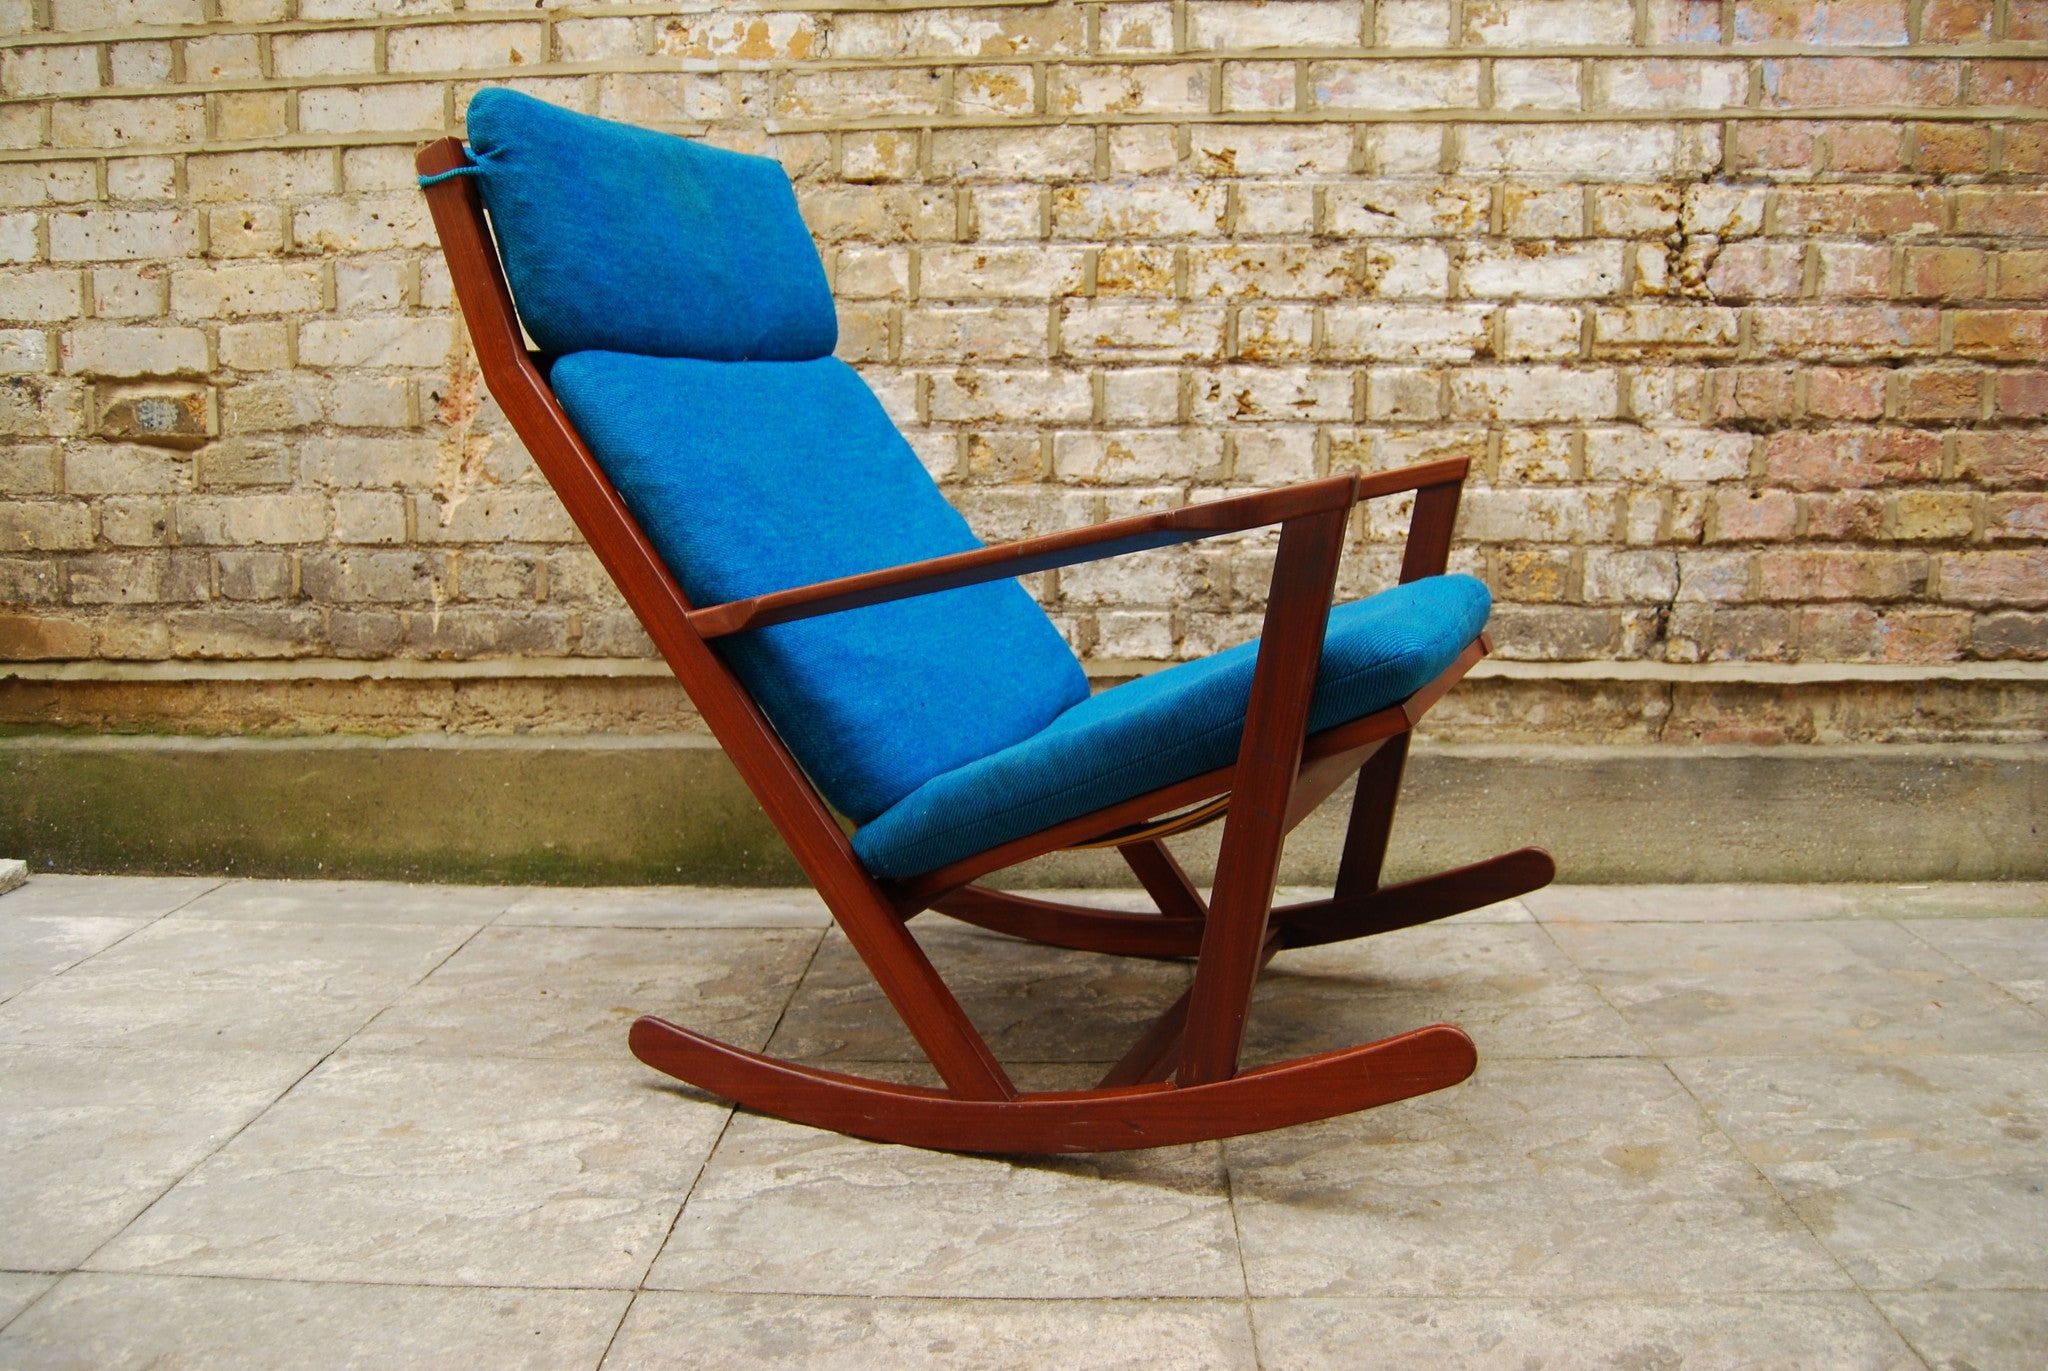 Teak rocking chair by Frem Rojle